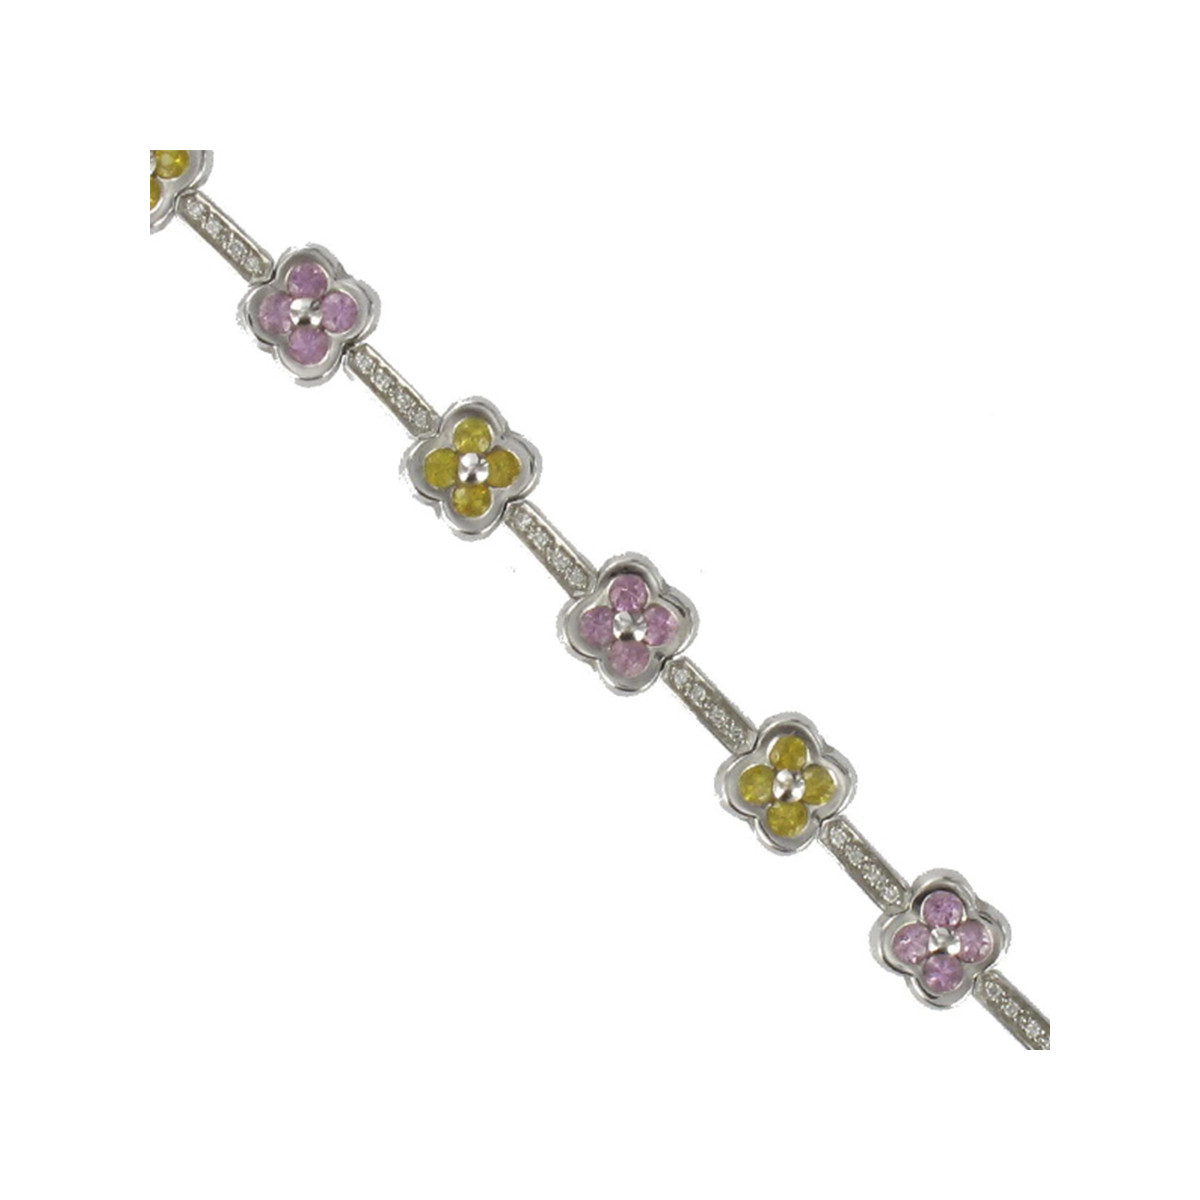 GOLD SAPPHIRS AND DIAMONDS BRACELET